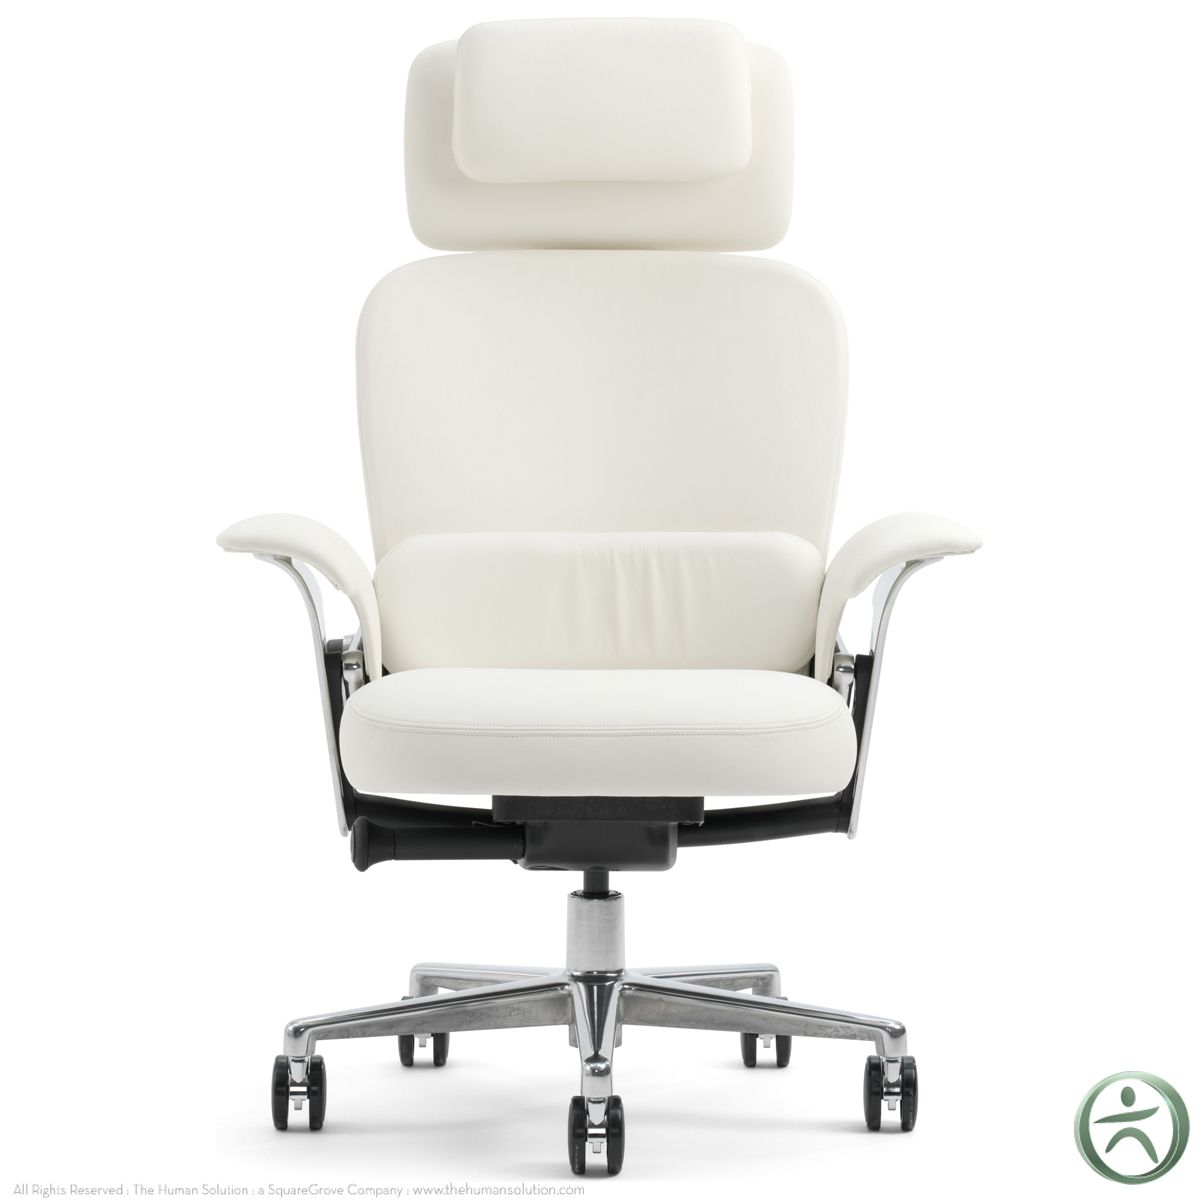 the steelcase leap worklounge is the big brother to the award winning steelcase leap chair